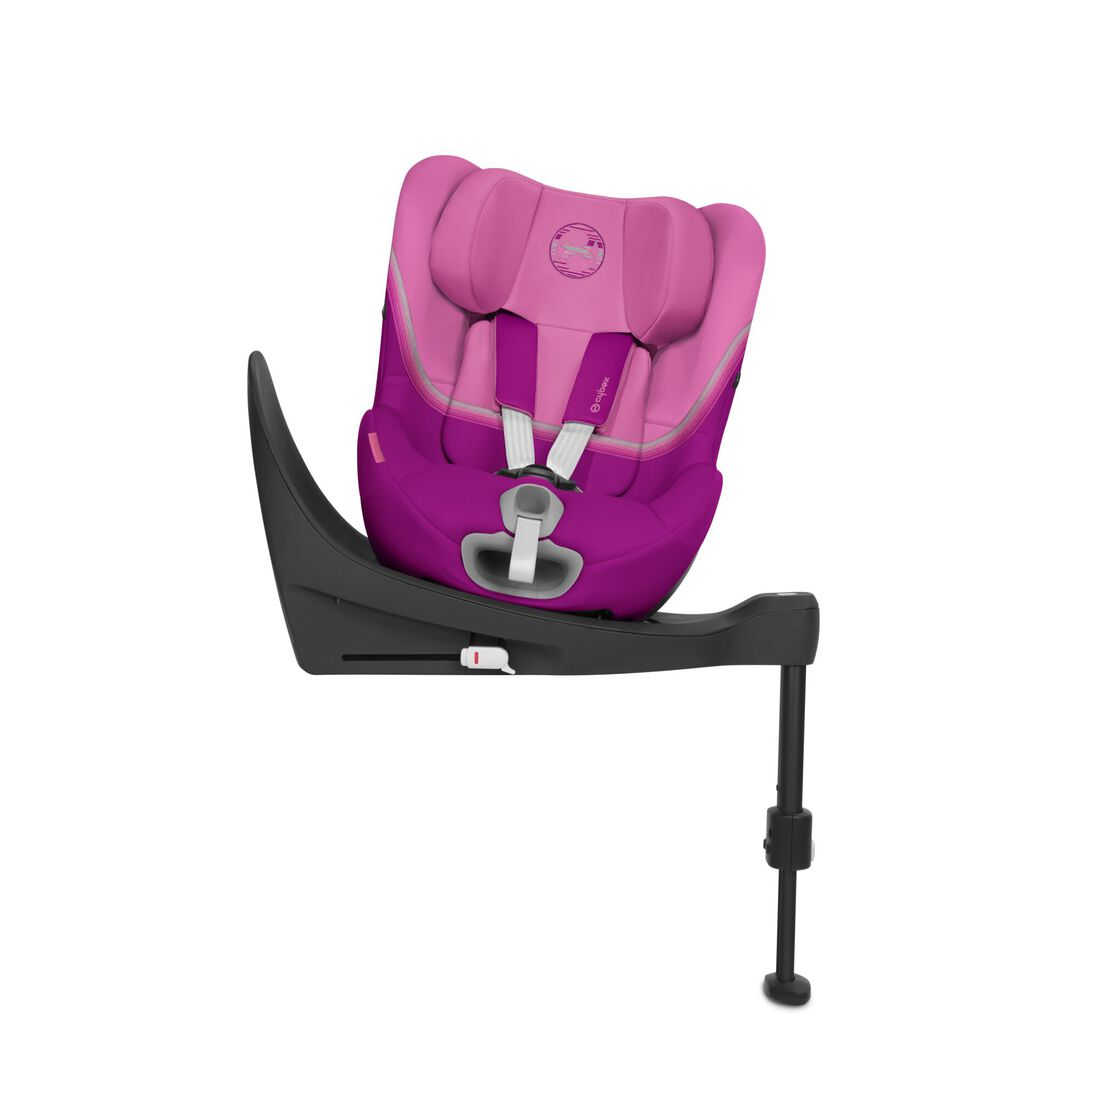 CYBEX Sirona S2 i-Size - Magnolia Pink in Magnolia Pink large image number 3